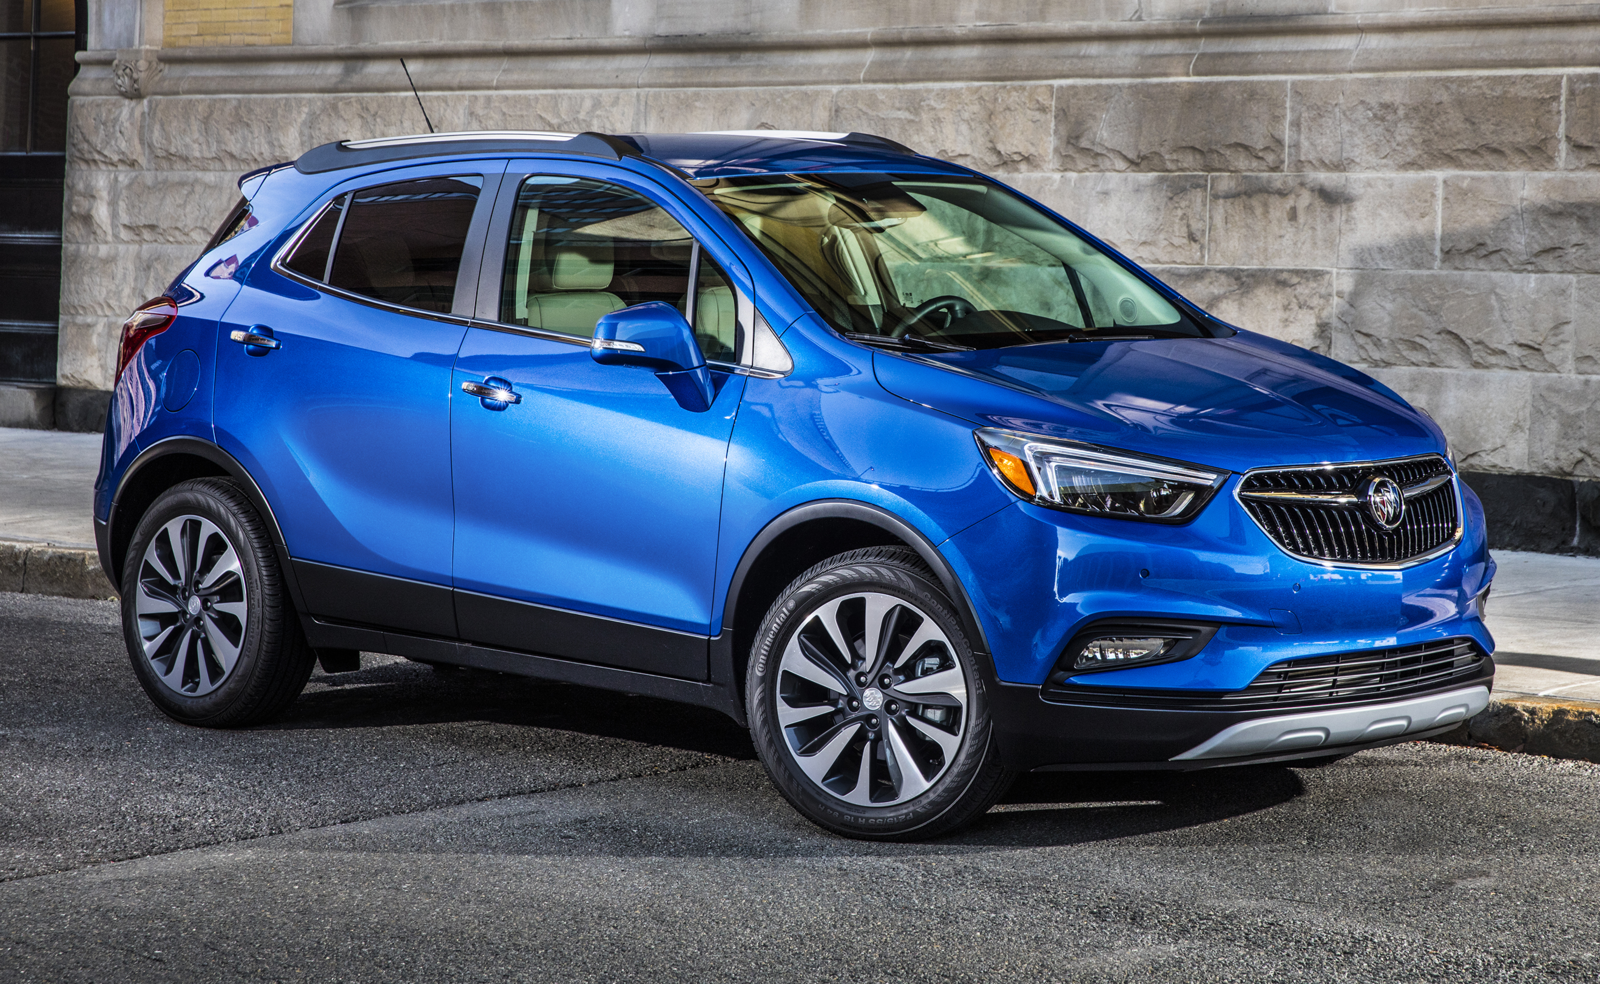 64 Gallery of 2019 Buick Encore Release Date Engine Spy Shoot with 2019 Buick Encore Release Date Engine